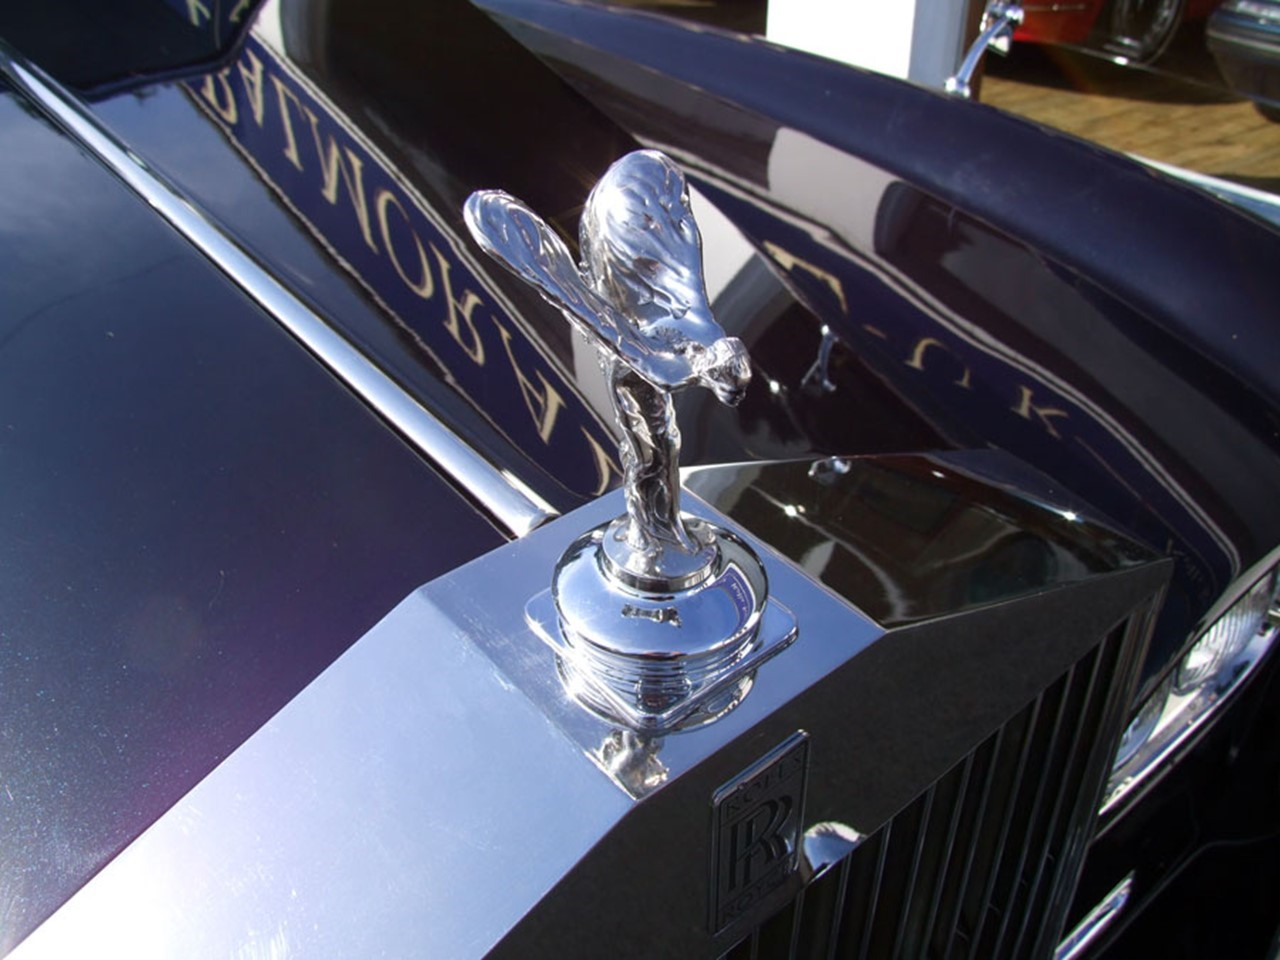 Spirit of Ecstasy 3